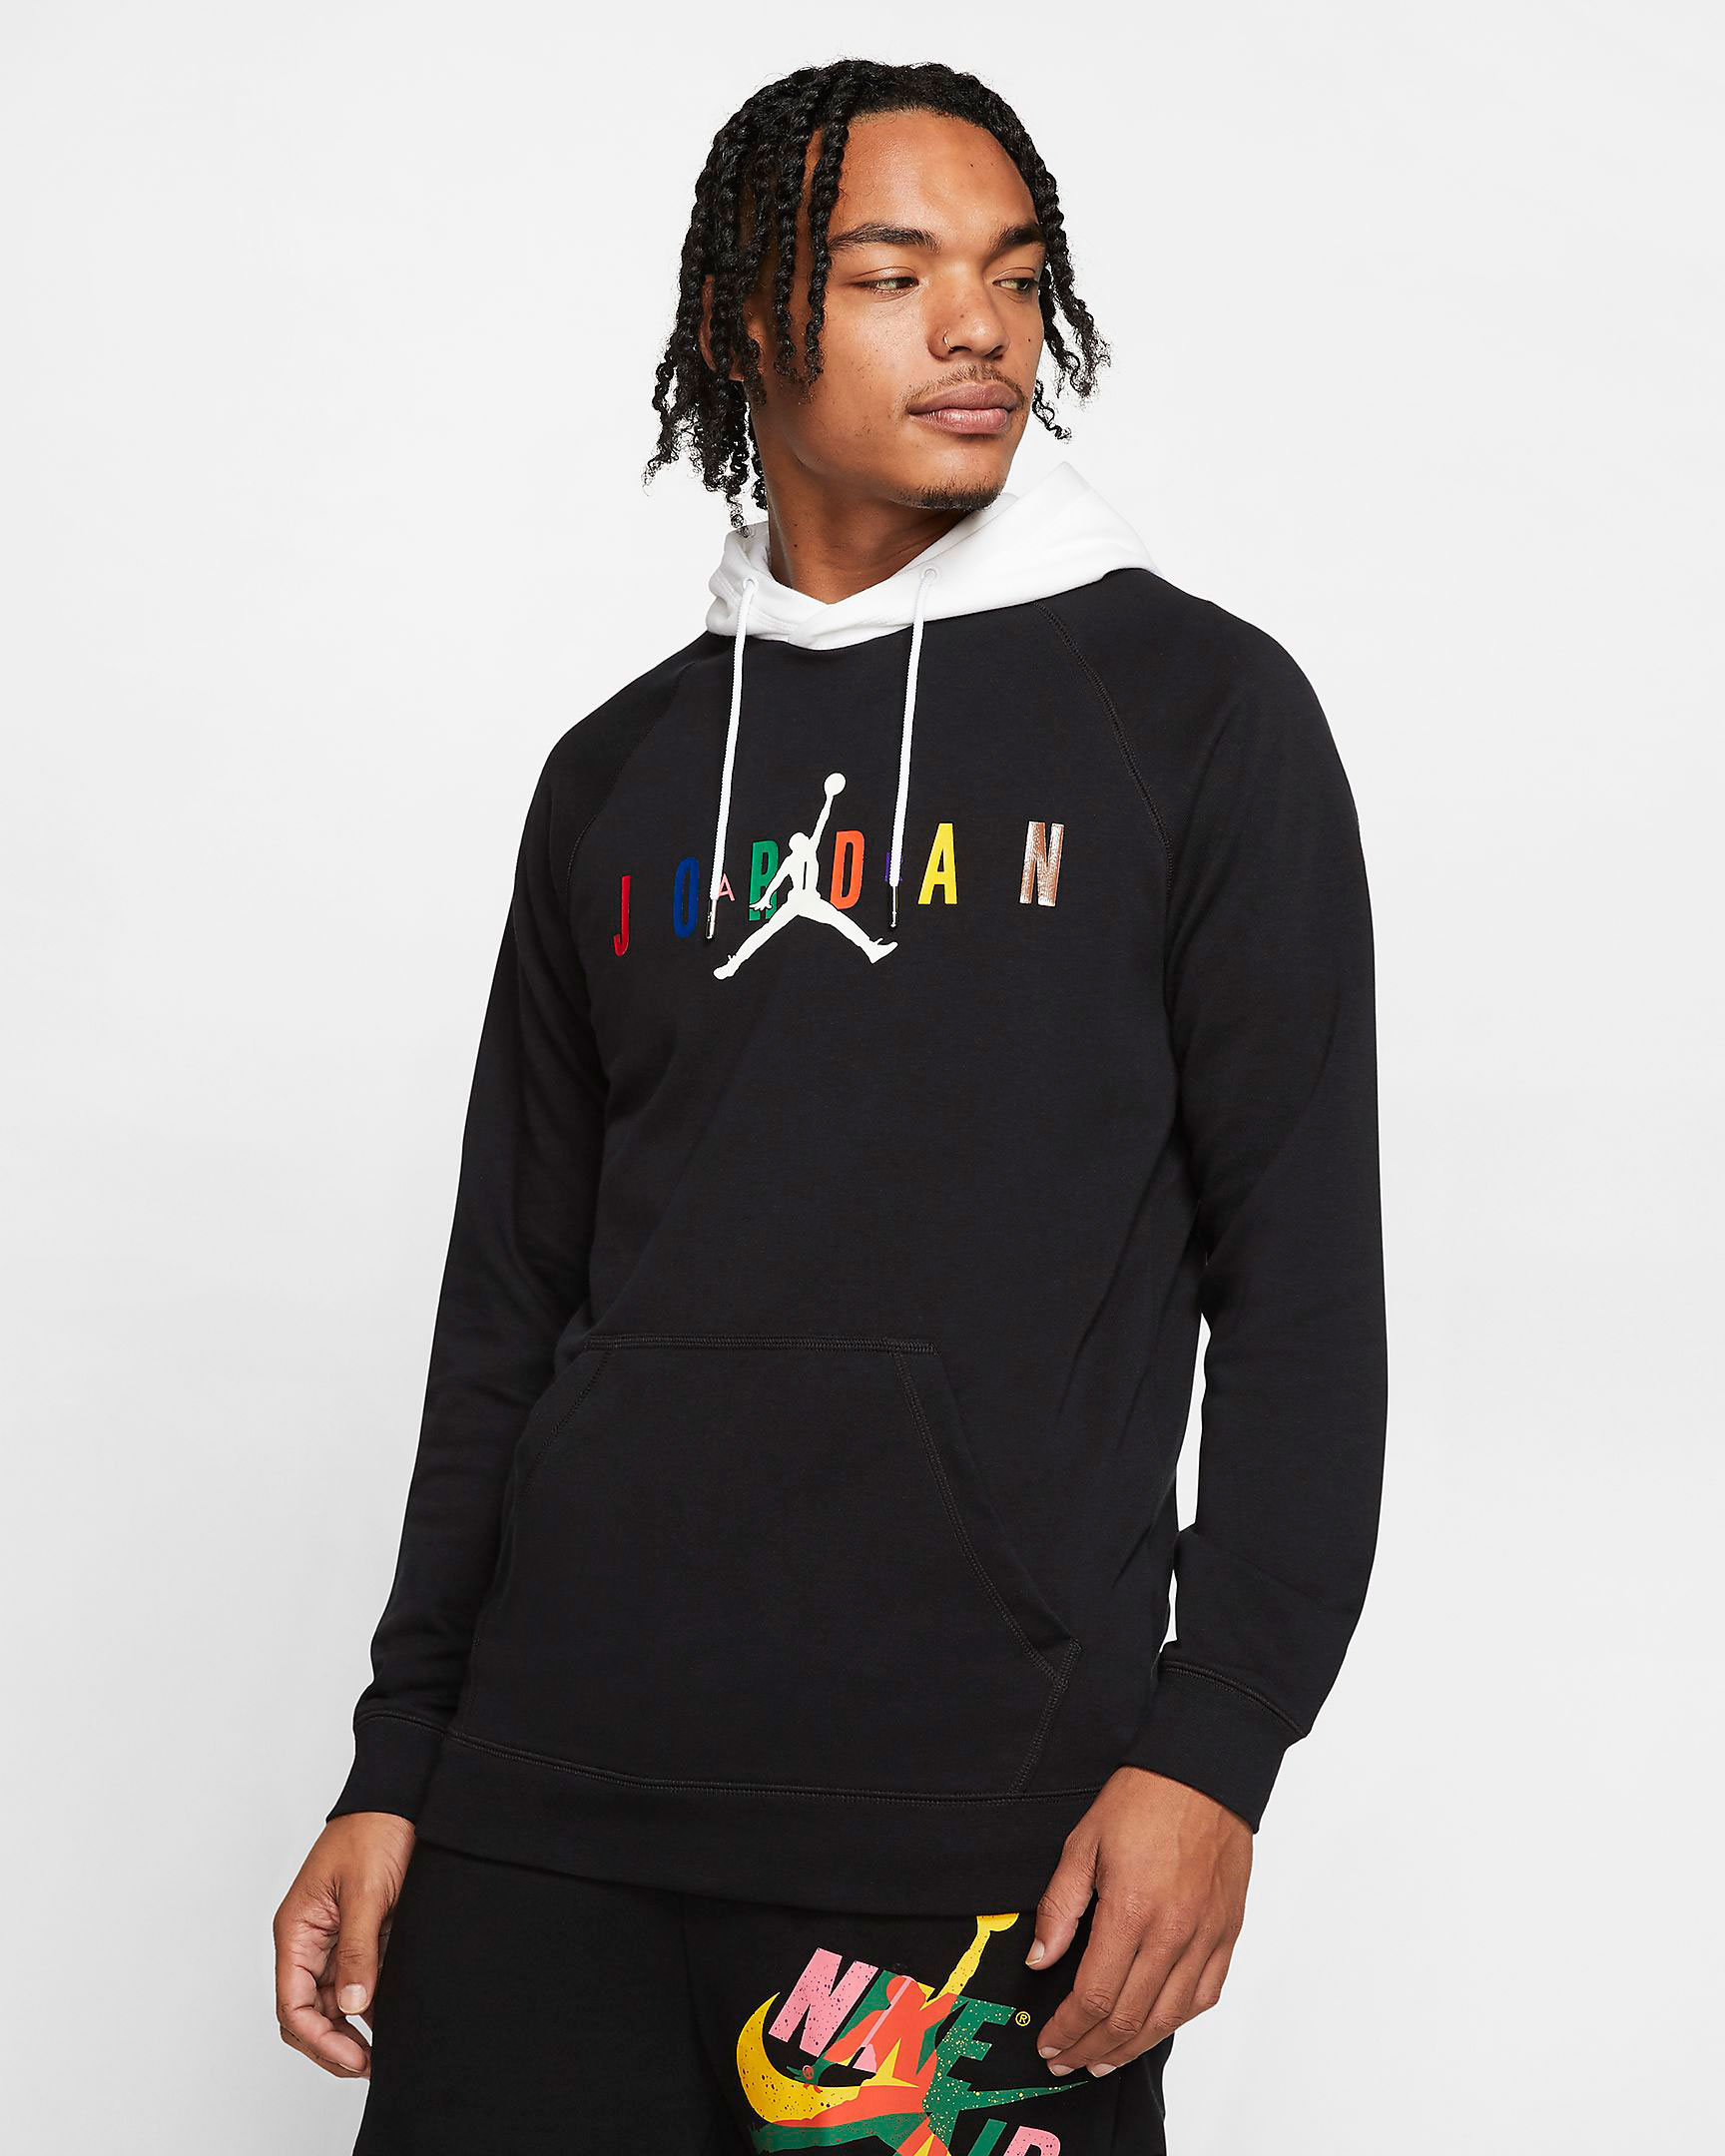 jordan-sport-dna-multi-color-hoodie-3